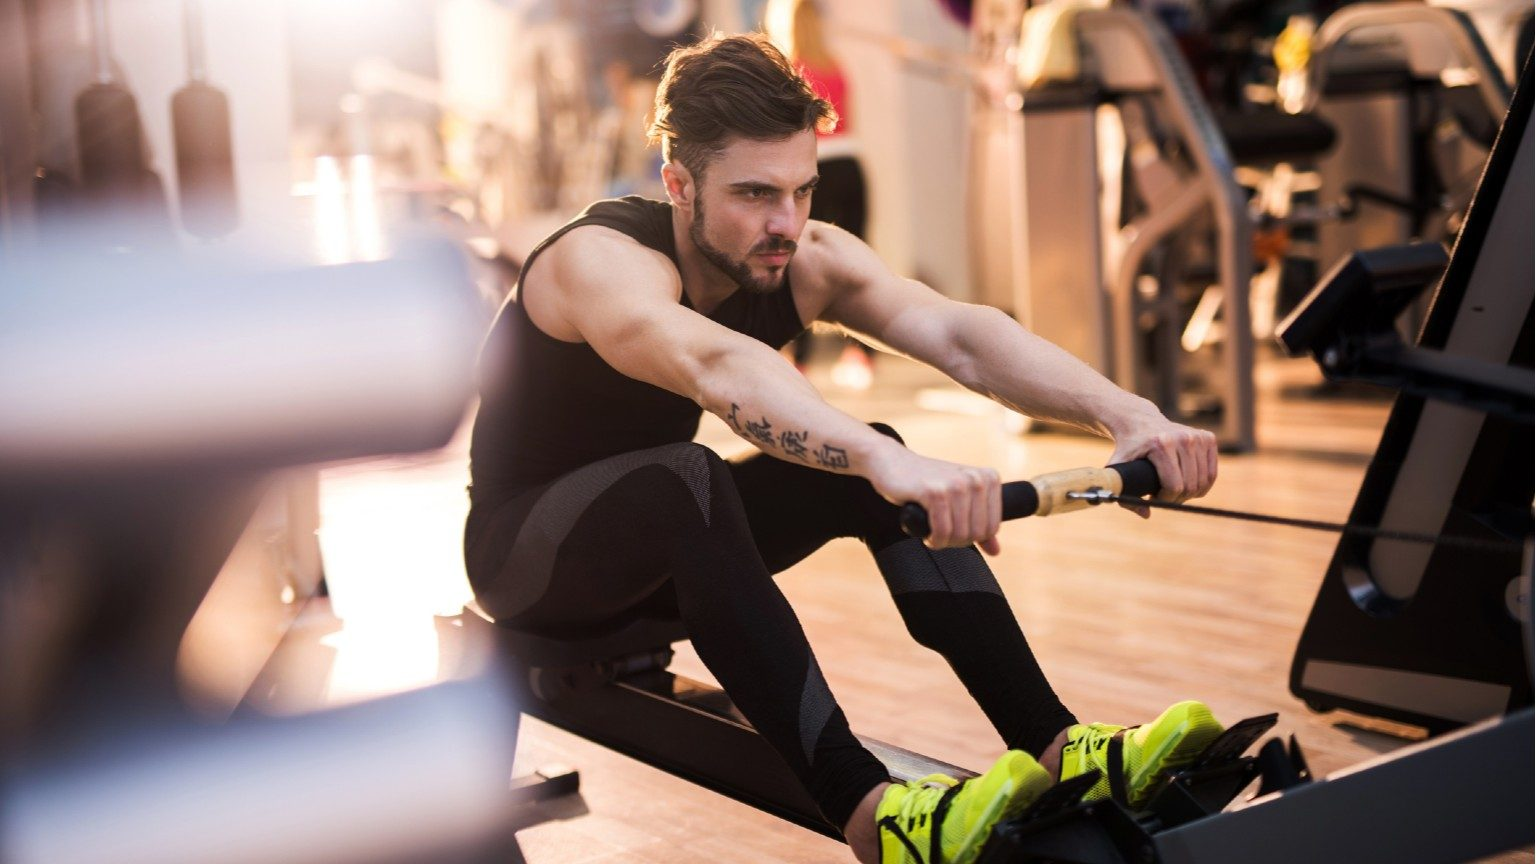 Determined man exercising on rowing machine in a gym